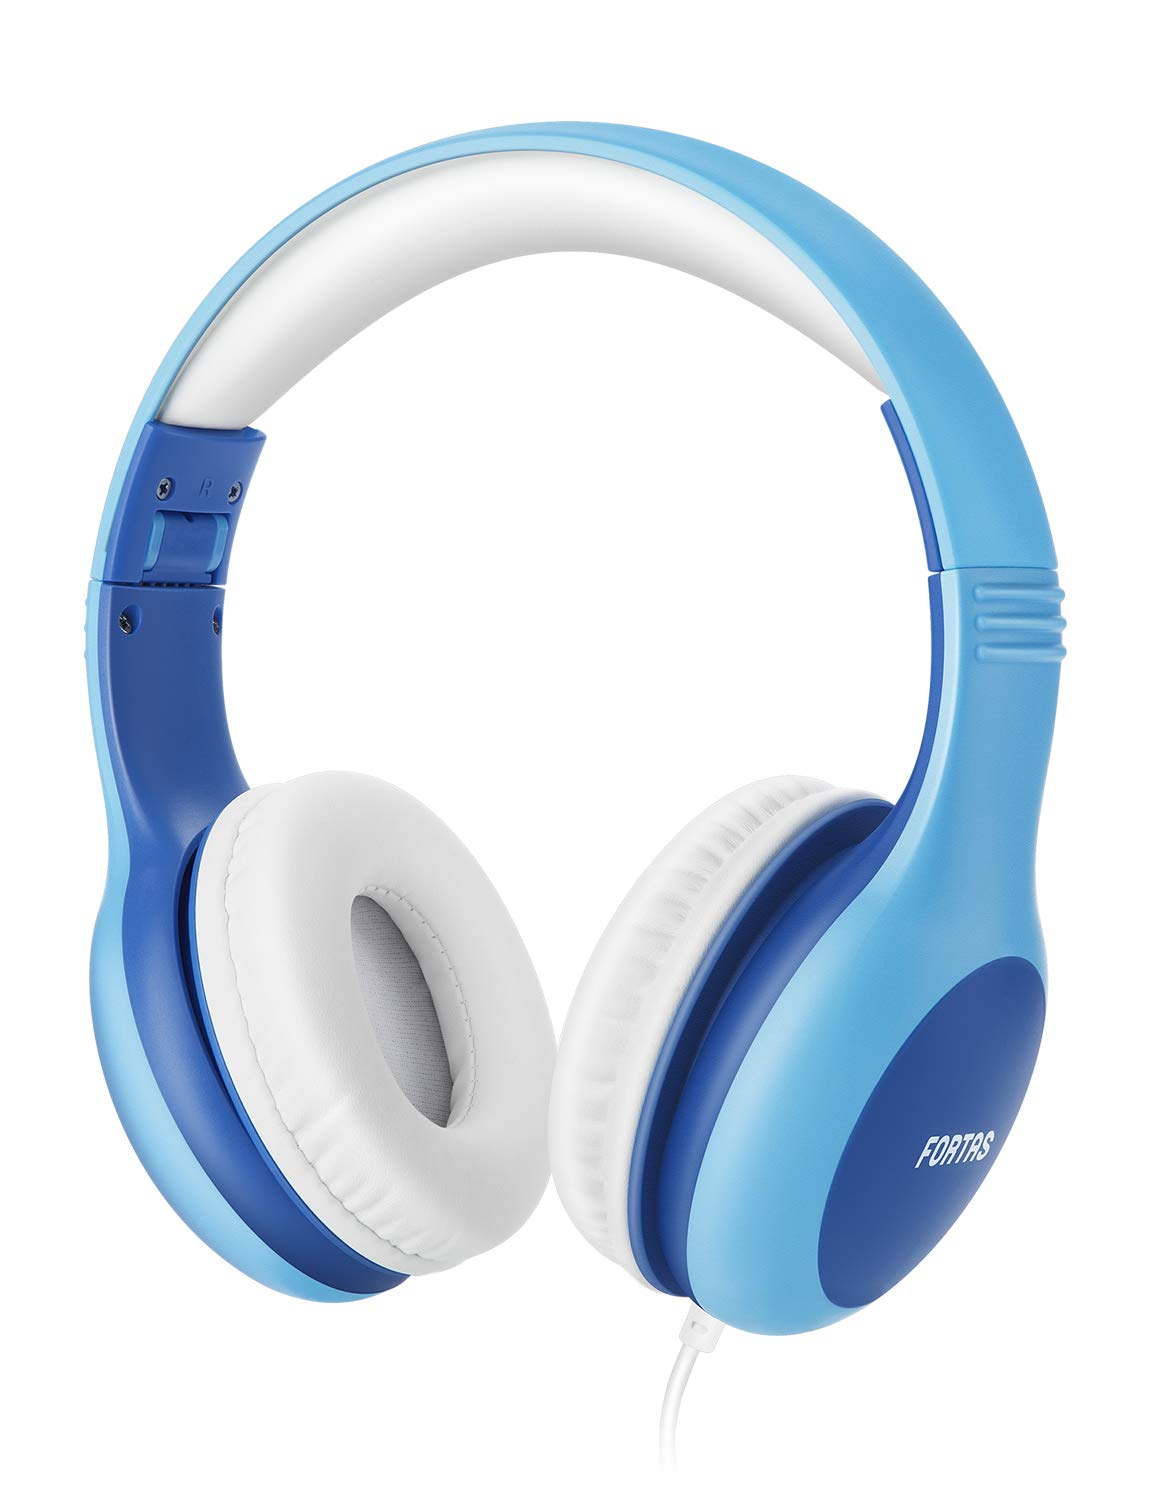 Fortas Kids Headphones, Audio Sharing Function On-Ear Headphones with 85dB Volume Limited, Soft Earmuffs, 3.5mm Jack, Compatible with iPhone, iPad, Cellphones, Tablets, Android, Mac, PC (Blue) by Fortas